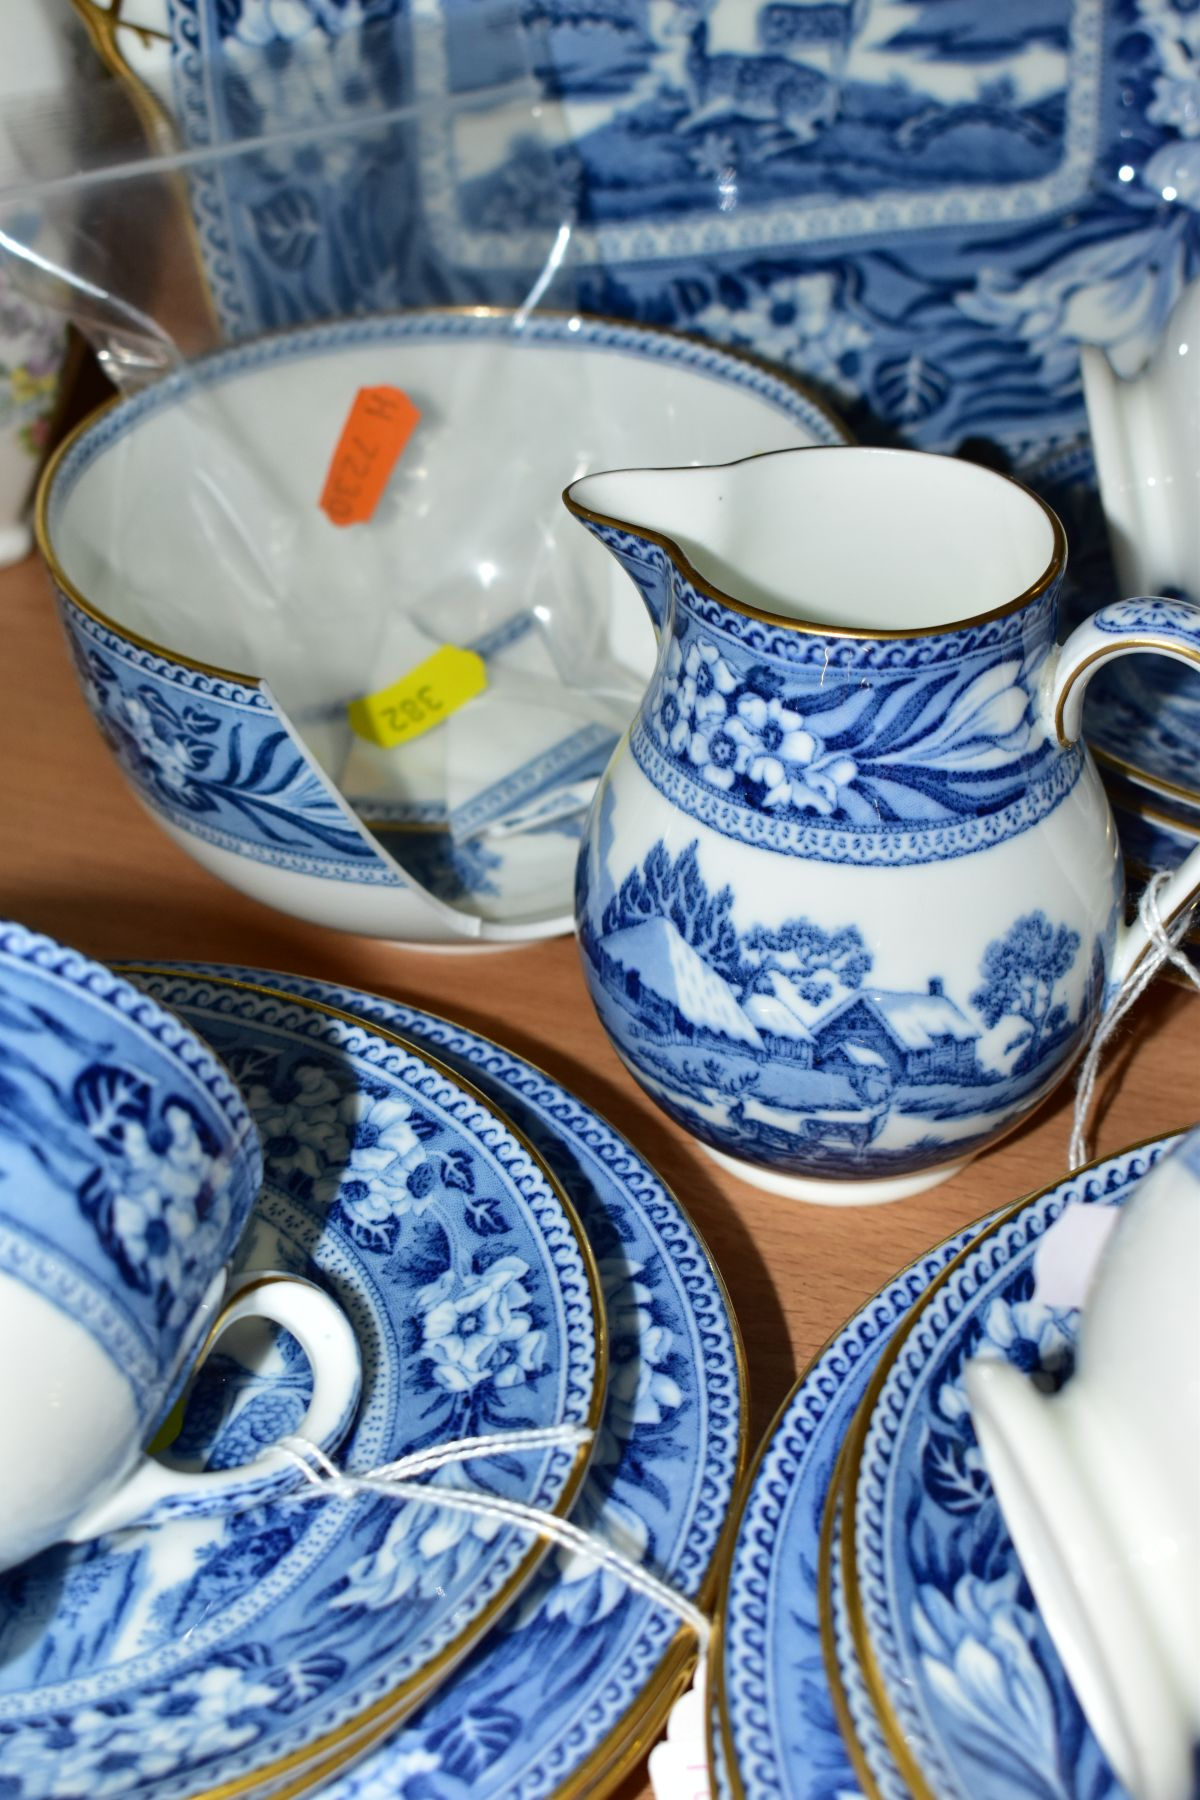 AN EARLY 20TH CENTURY WEDGWOOD BONE CHINA BLUE AND WHITE FALLOW DEER PATTERN PART TEA SET, brown - Image 4 of 6